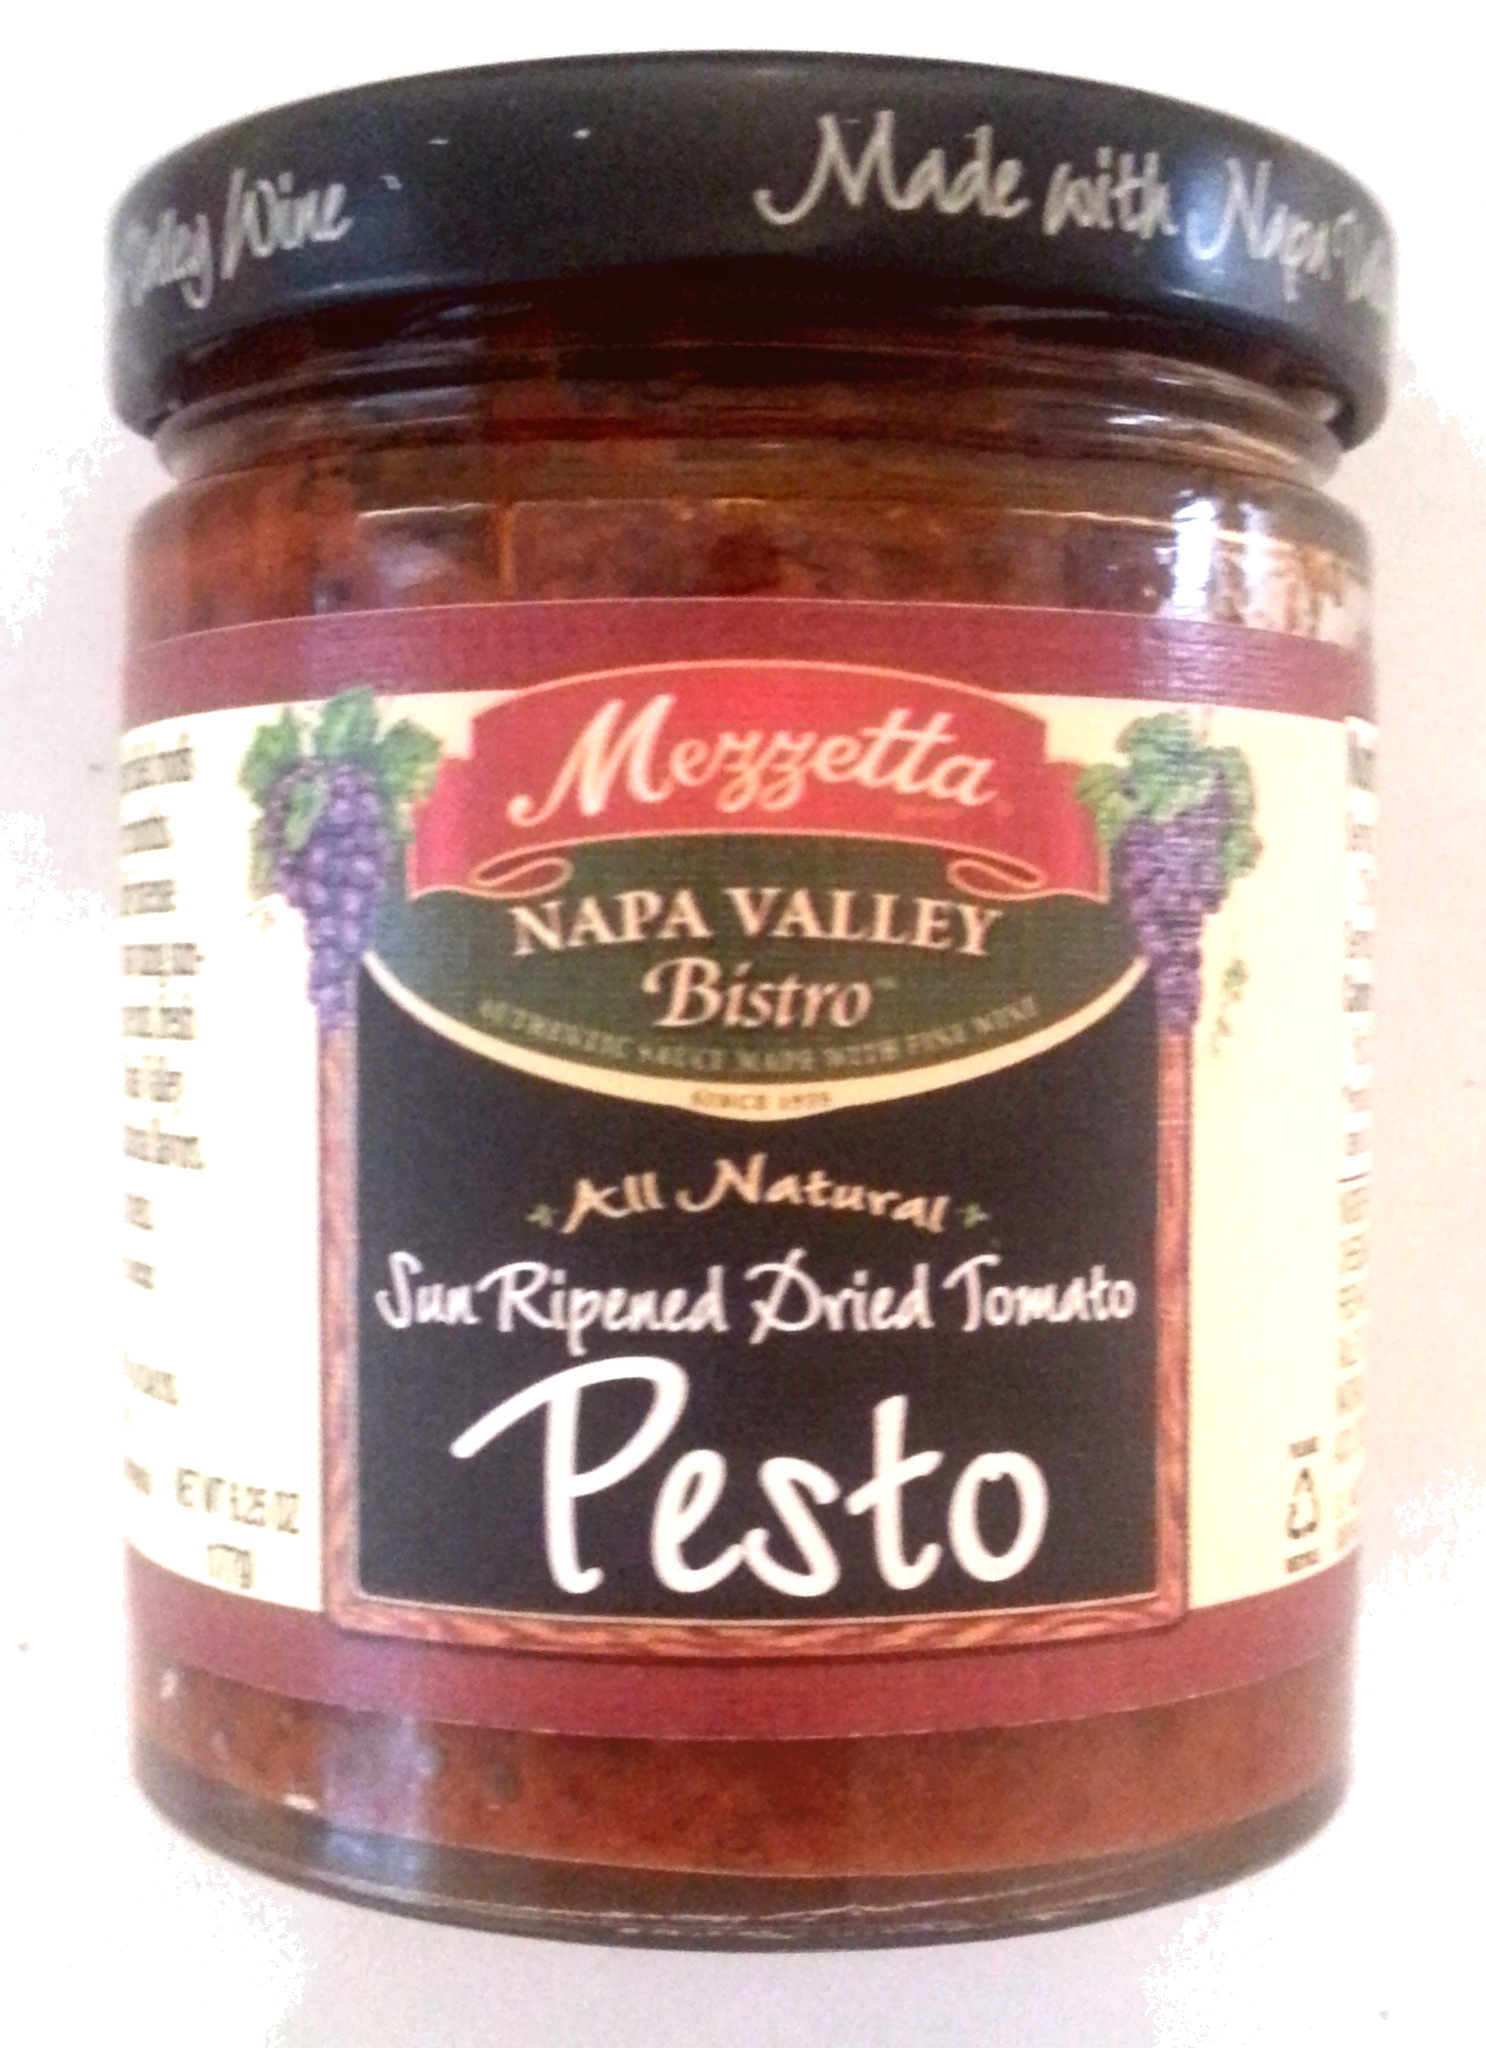 Sun Ripened Dried Tomato Pesto - Product